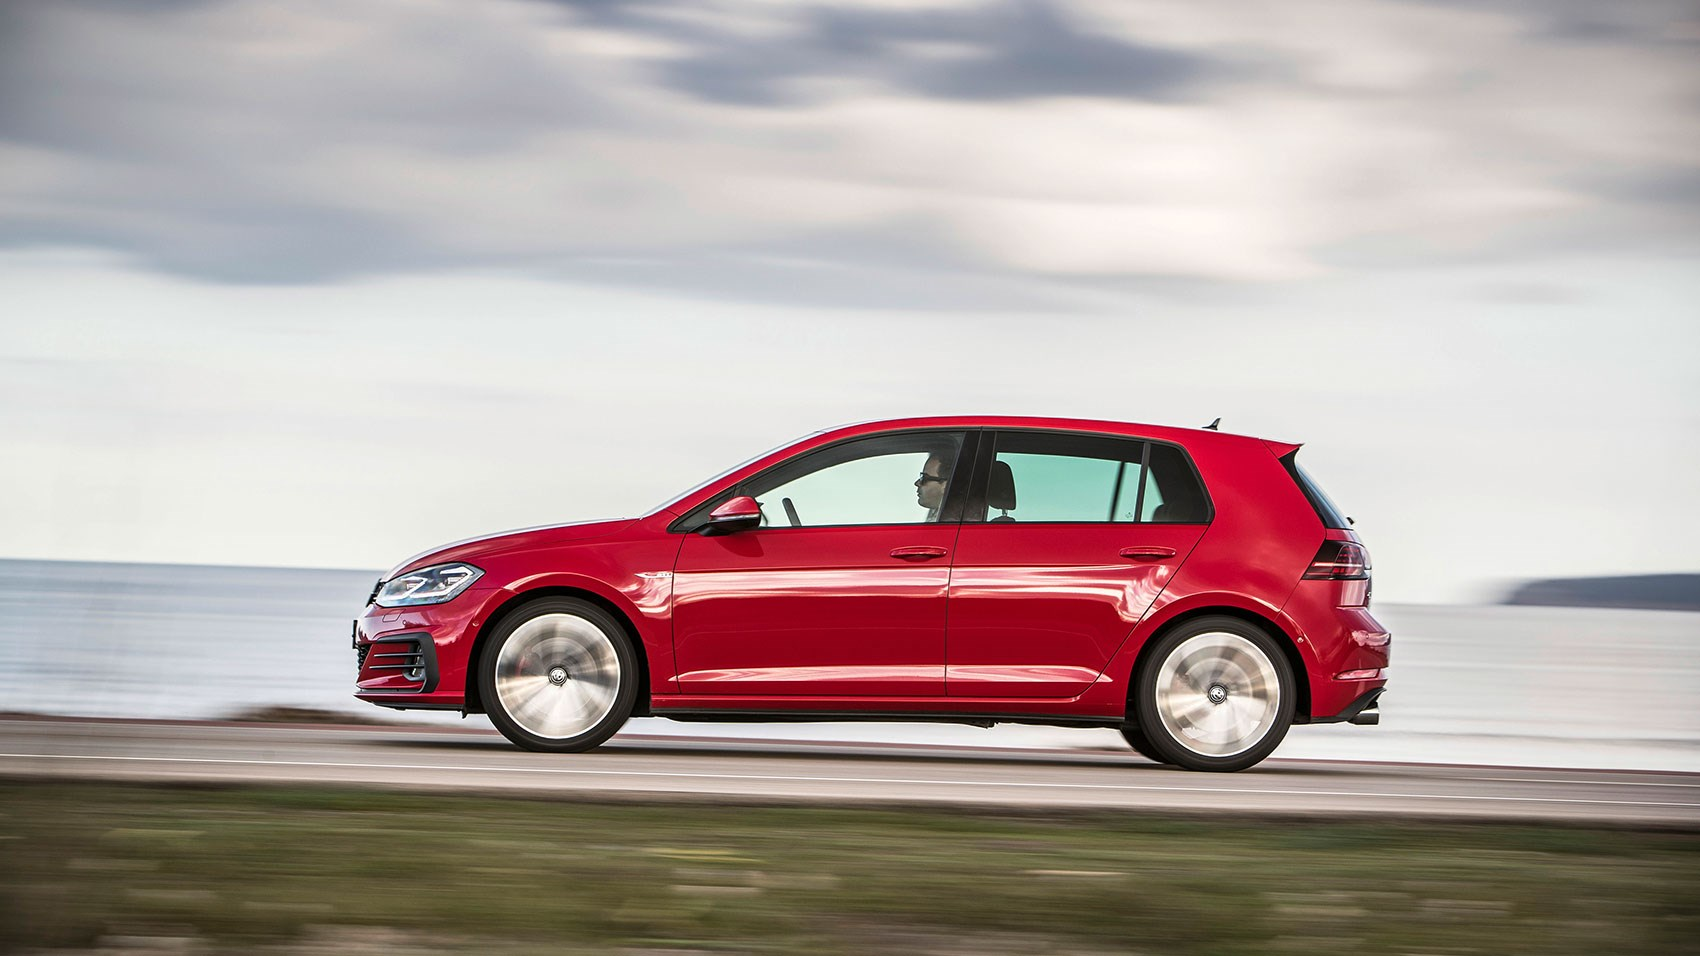 The Car Magazine Vw Golf Gti Review